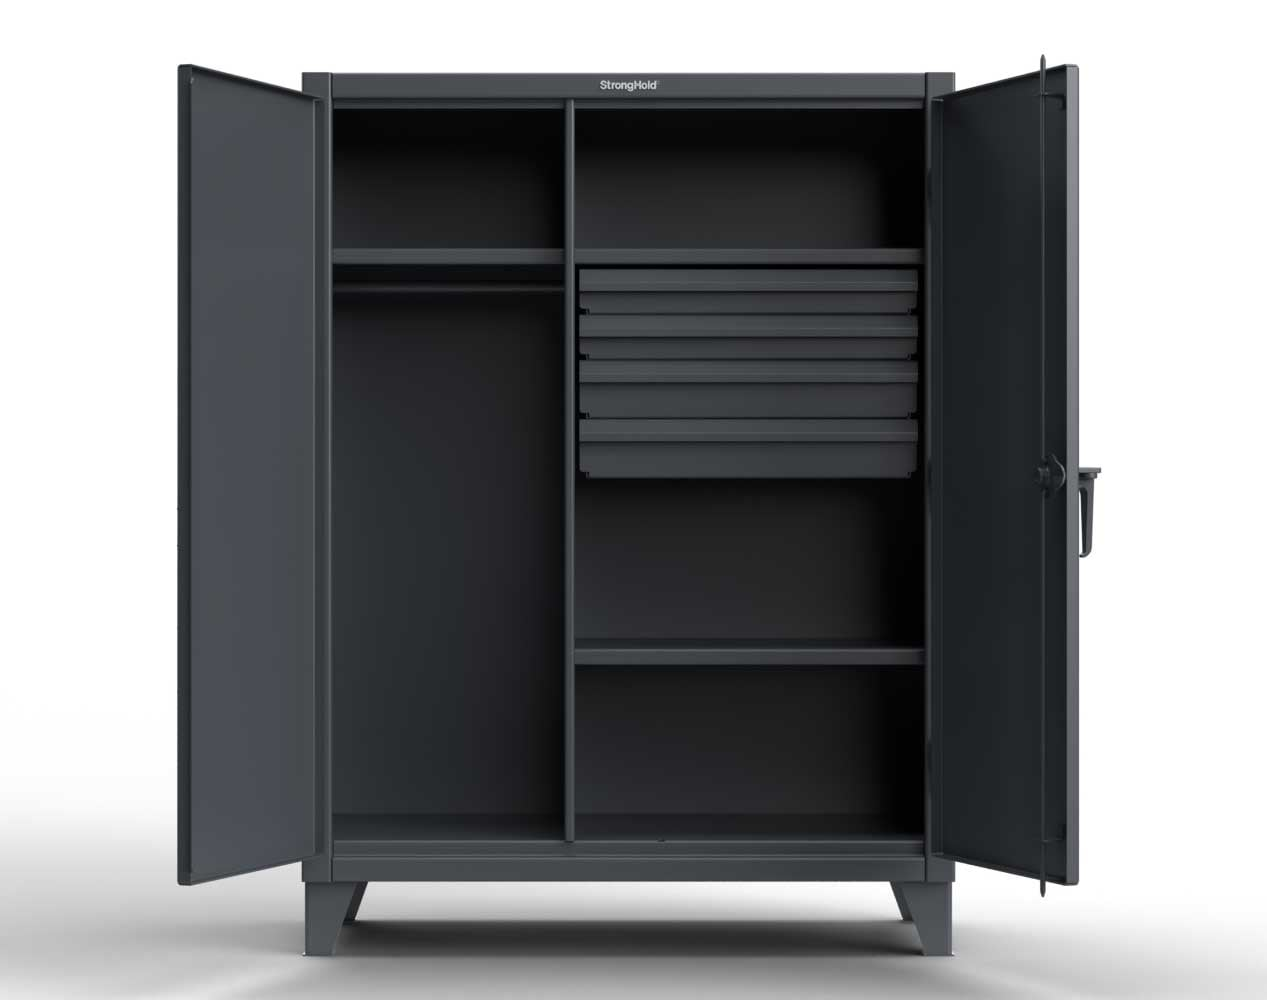 Extra Heavy Duty 12 GA Wardrobe Cabinet with 4 Drawers, 4 Shelves – 36 In. W x 24 In. D x 78 In. H